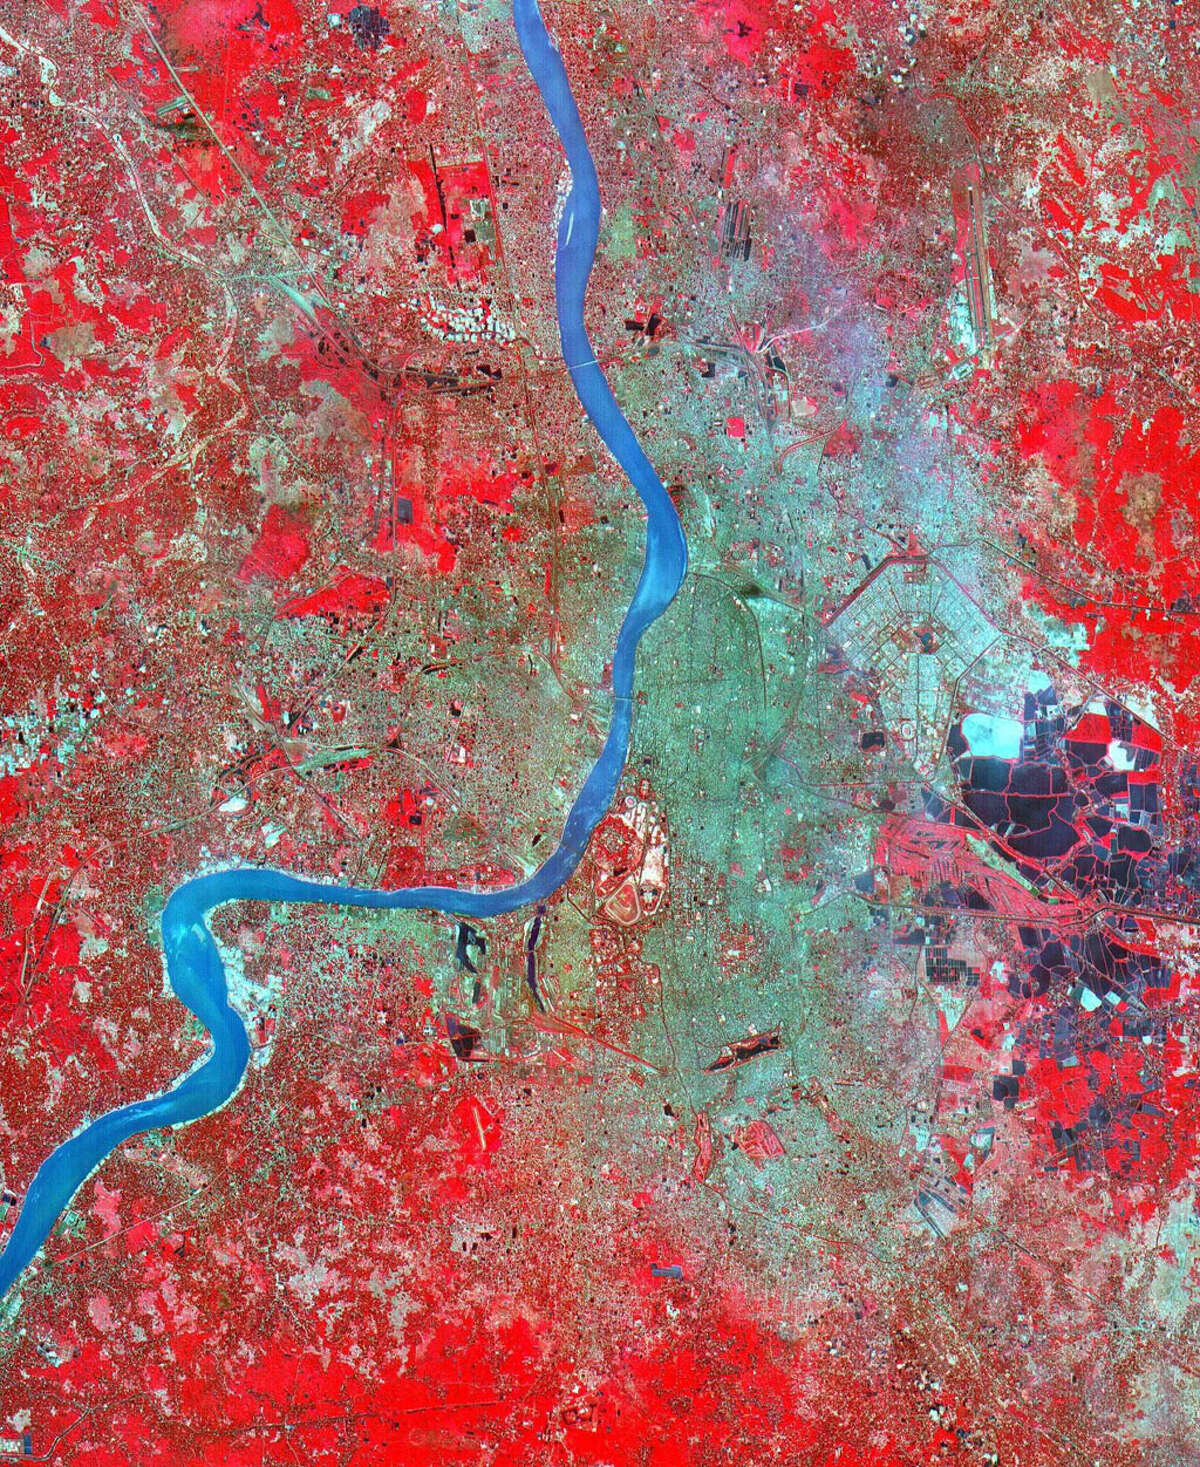 20. Kolkata/Calcutta, India, is bustling with 14,810,000 humans in an urban zone of some 465 square miles. NASA caption: In 1690 the British East India Company founded Calcutta as a trading post on the marshy east bank of the Hugli River. Chosen for its easily defensible location and its access to the Bay of Bengal, the site developed into an important trading port. In 1773 Calcutta was made the capital of British India. As merchants and workers from all over the Indian subcontinent flocked to the city, British interests prospered, and British colonizers built mansions and palaces on land reclaimed from the marshes and swampland. In 1912, however, Calcutta lost its position as the colonial capital to Delhi. The end of British rule in India in 1947 cut off many of Calcutta's sources of trade and brought a deluge of immigrants to the city. The Bangladesh war in 1971 exacerbated the influx of refugees. Today this vibrant city has a population of over 5 million, and continues to sprawl to the north and south from the central grid of its old European section.